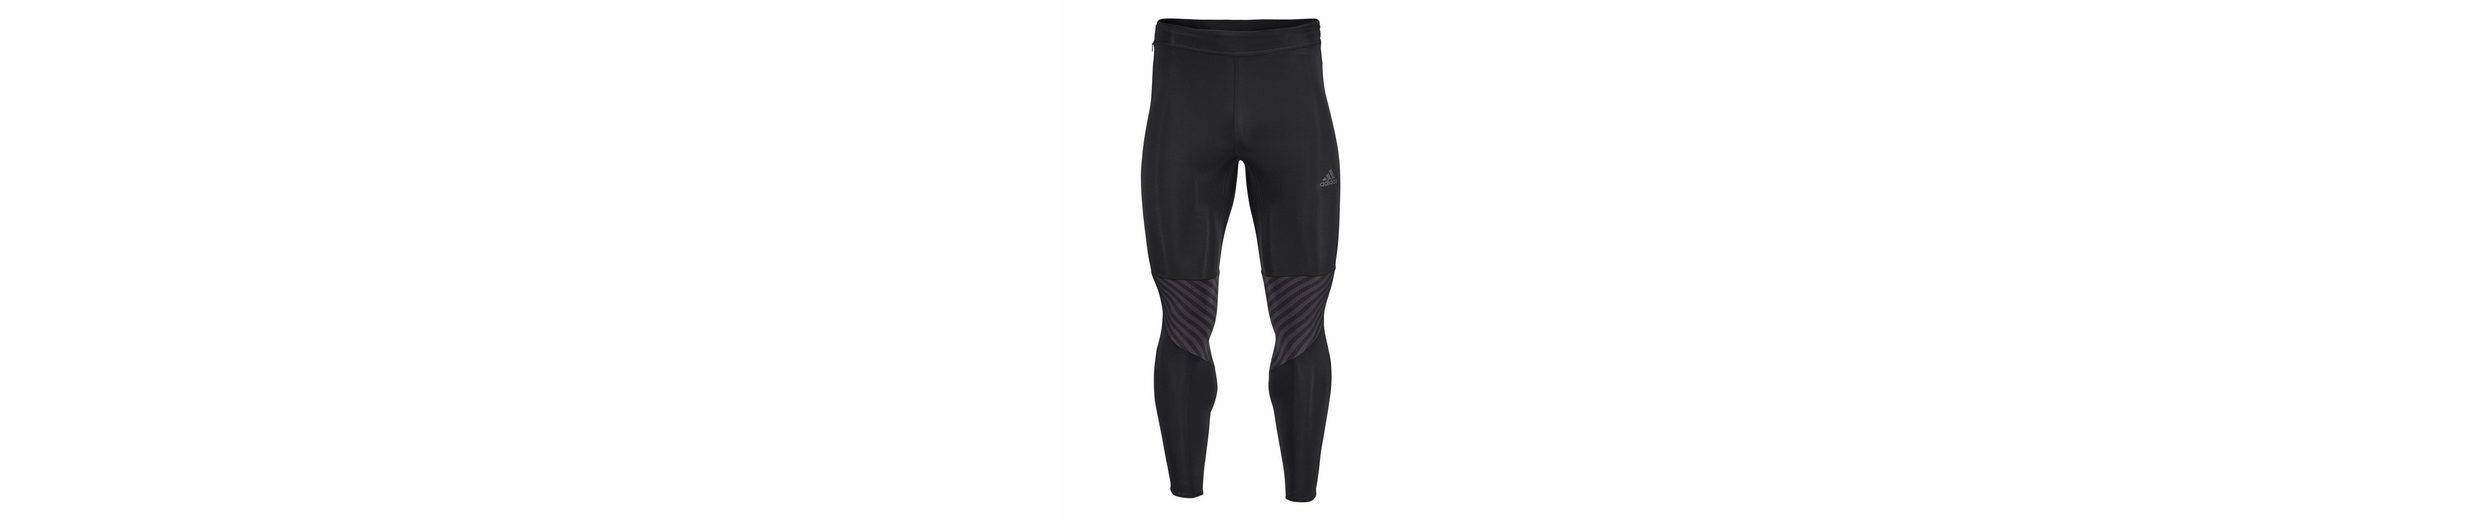 adidas Performance Lauftights SUPERNOVA LONG GRA TIGHT MEN, mit kleiner Hosenbundtasche